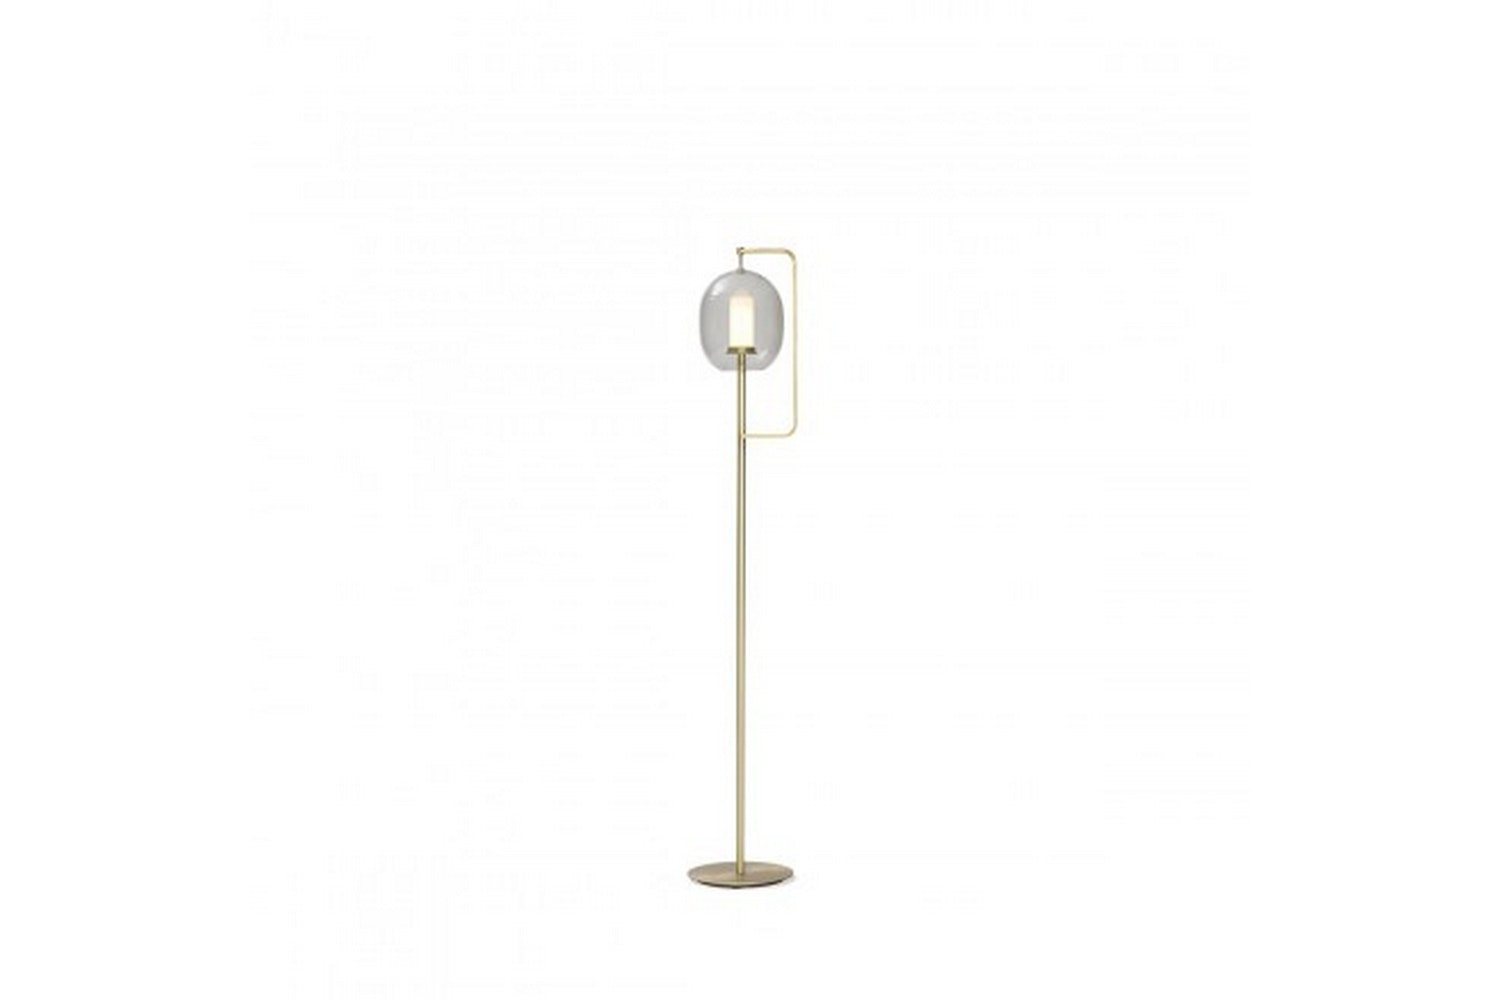 Lantern Light Floor Lamp by Neri&Hu for ClassiCon